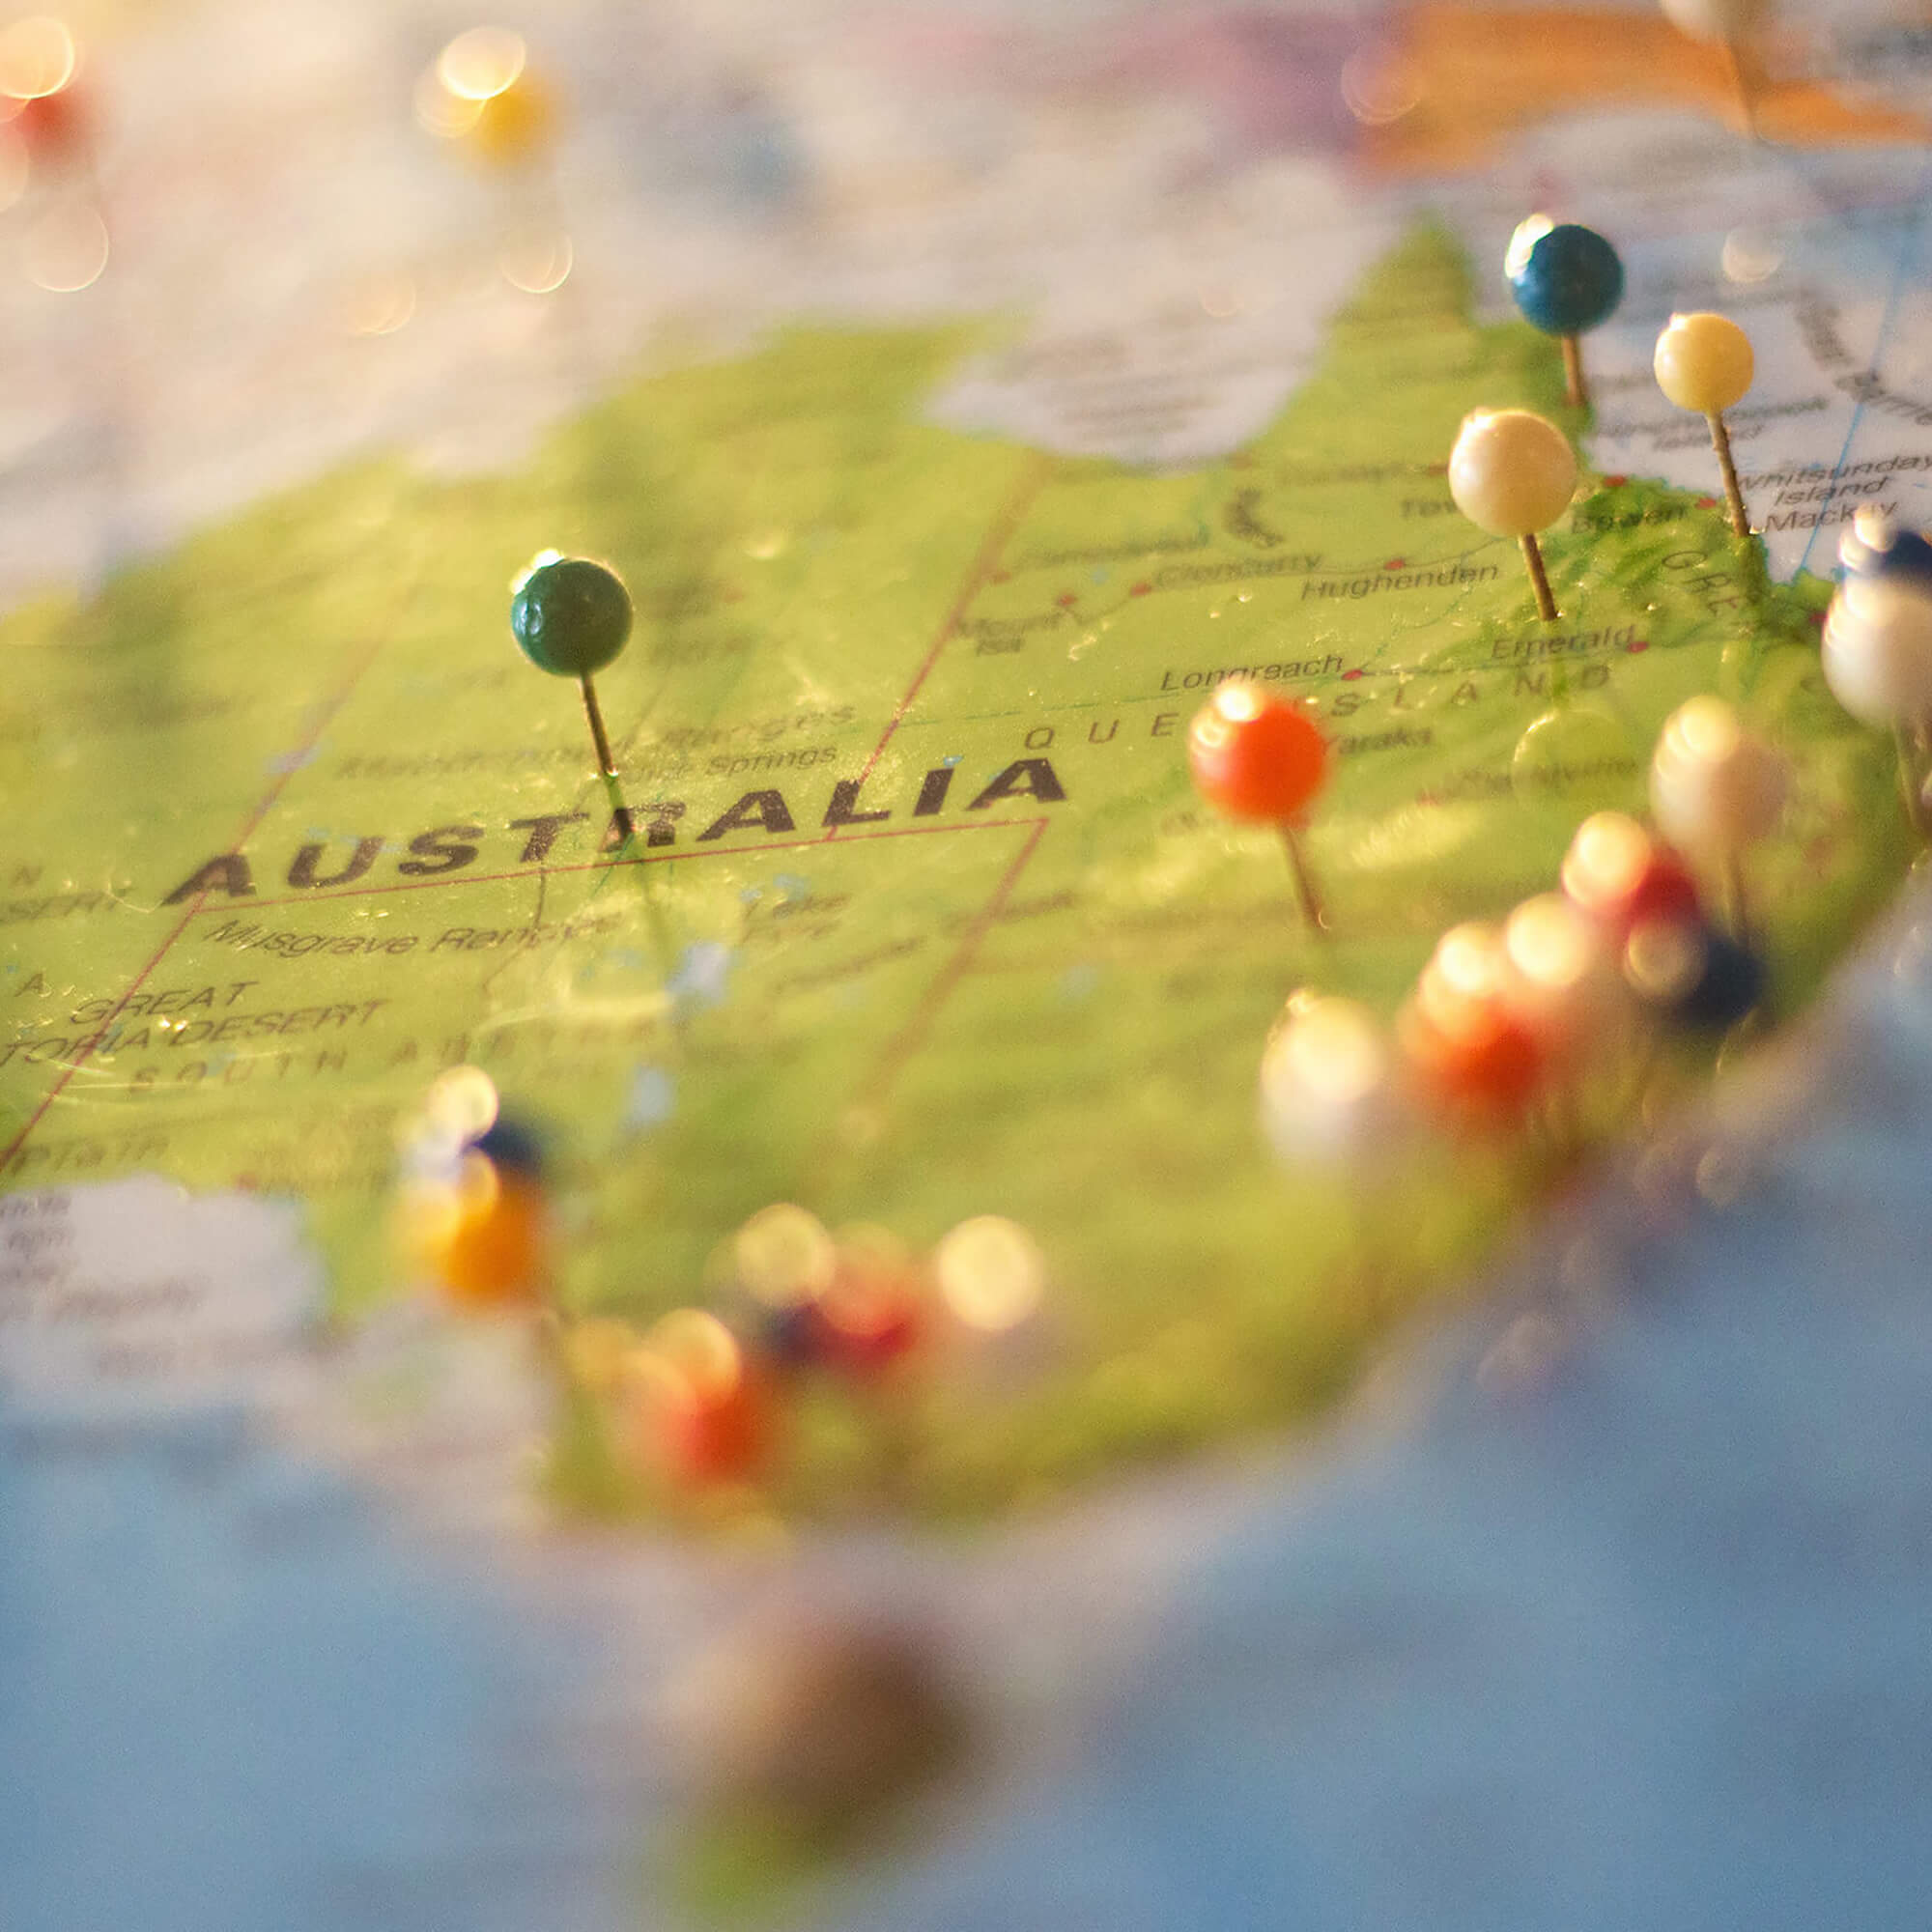 A map of Australia with pins in